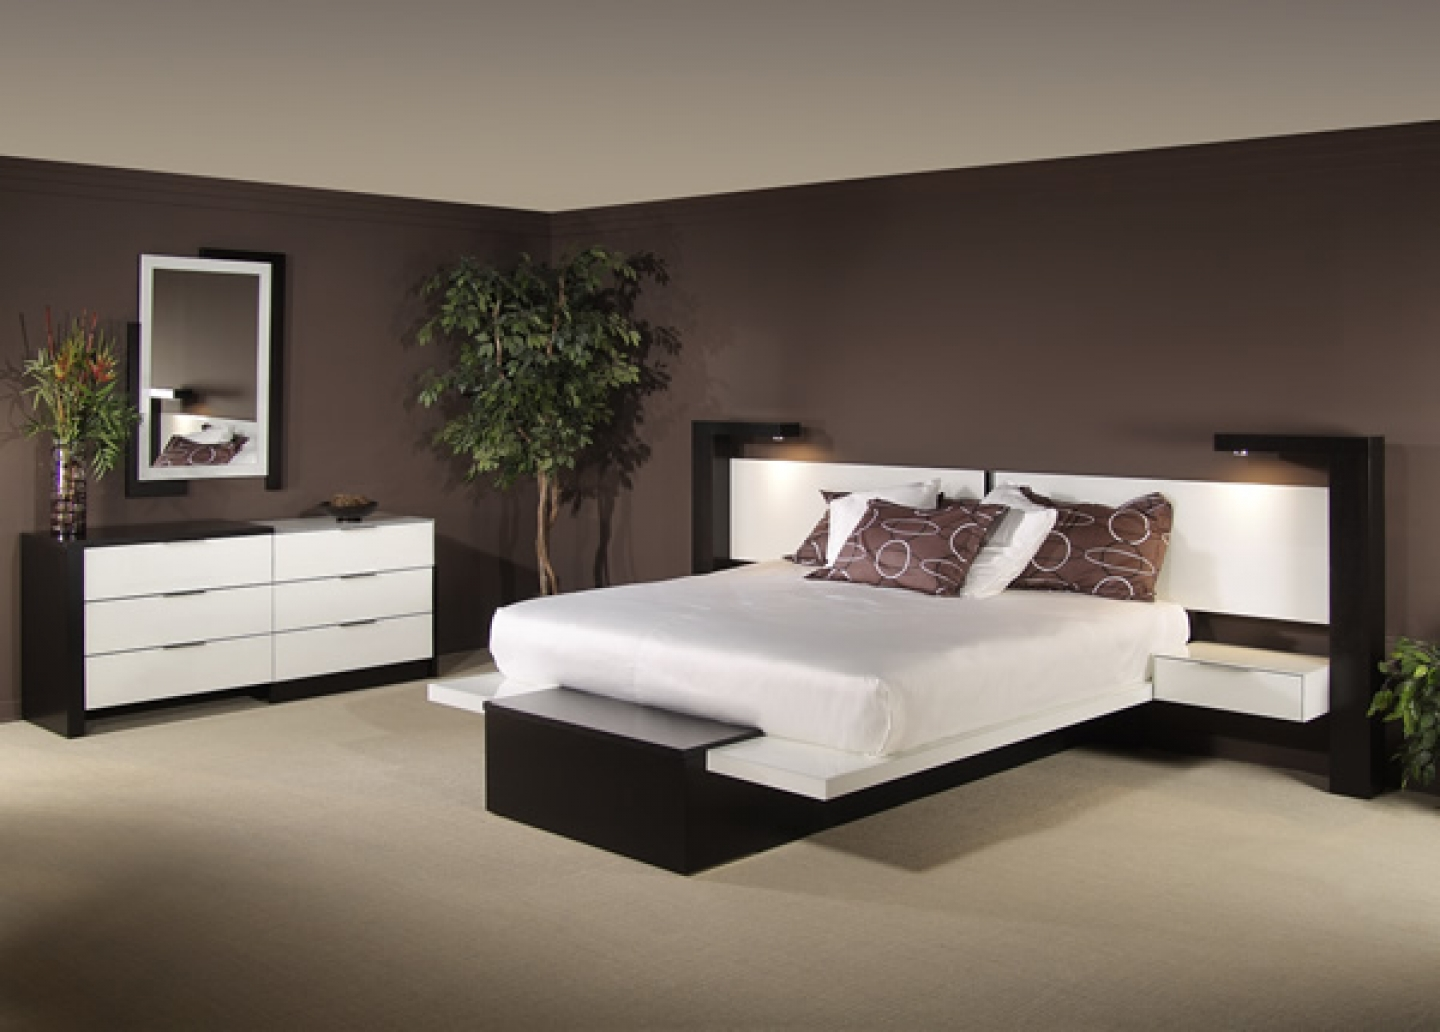 Designer bedroom furniture items that count